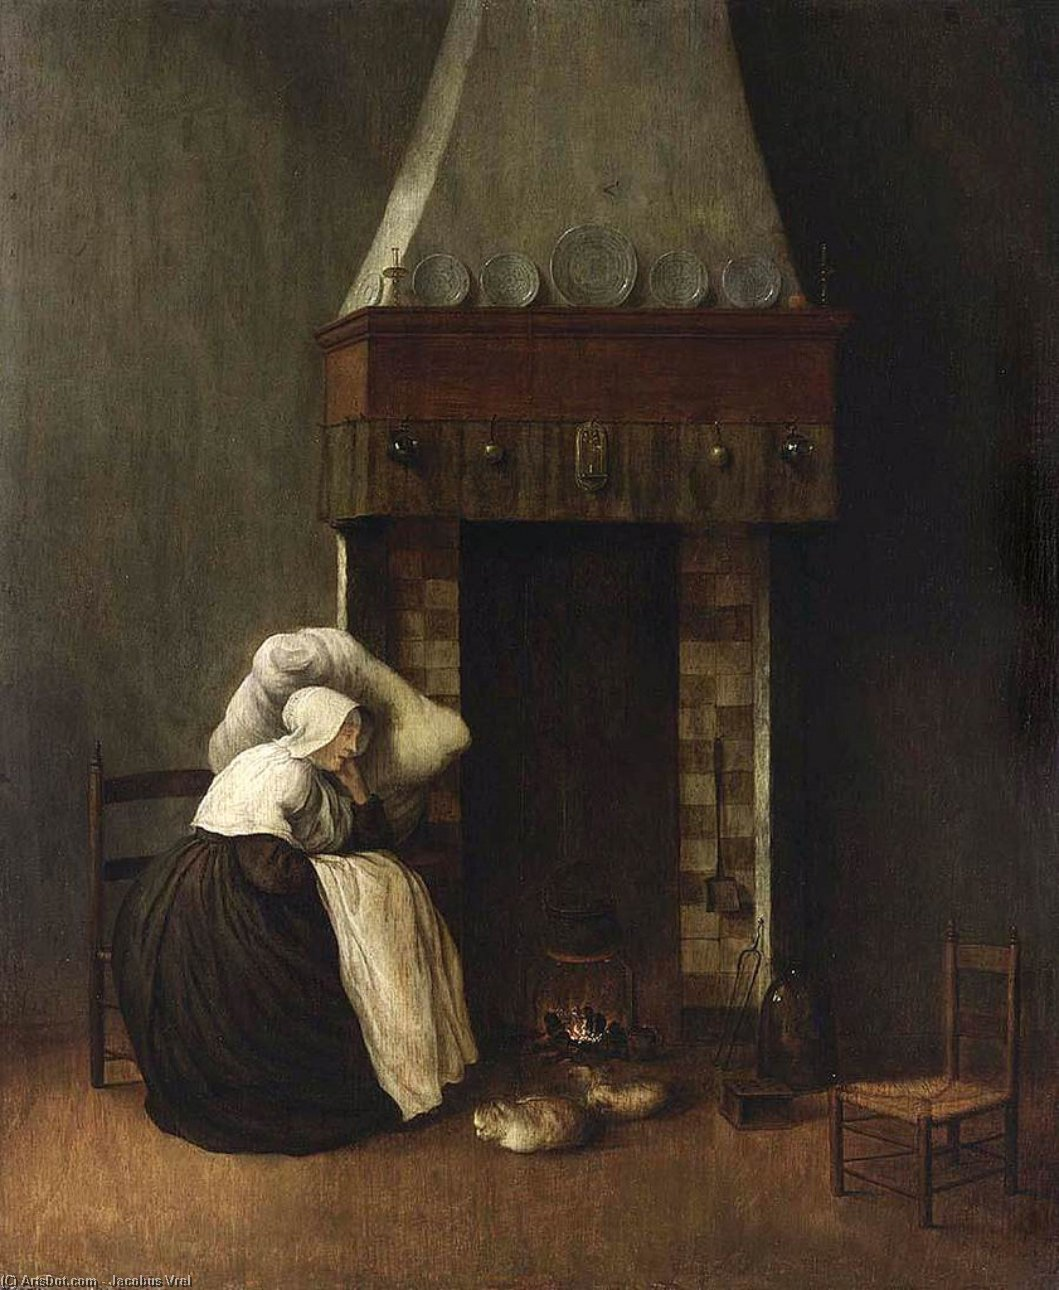 Wikioo.org - The Encyclopedia of Fine Arts - Painting, Artwork by Jacobus Vrel - Sleeping Woman (The Convalescent)